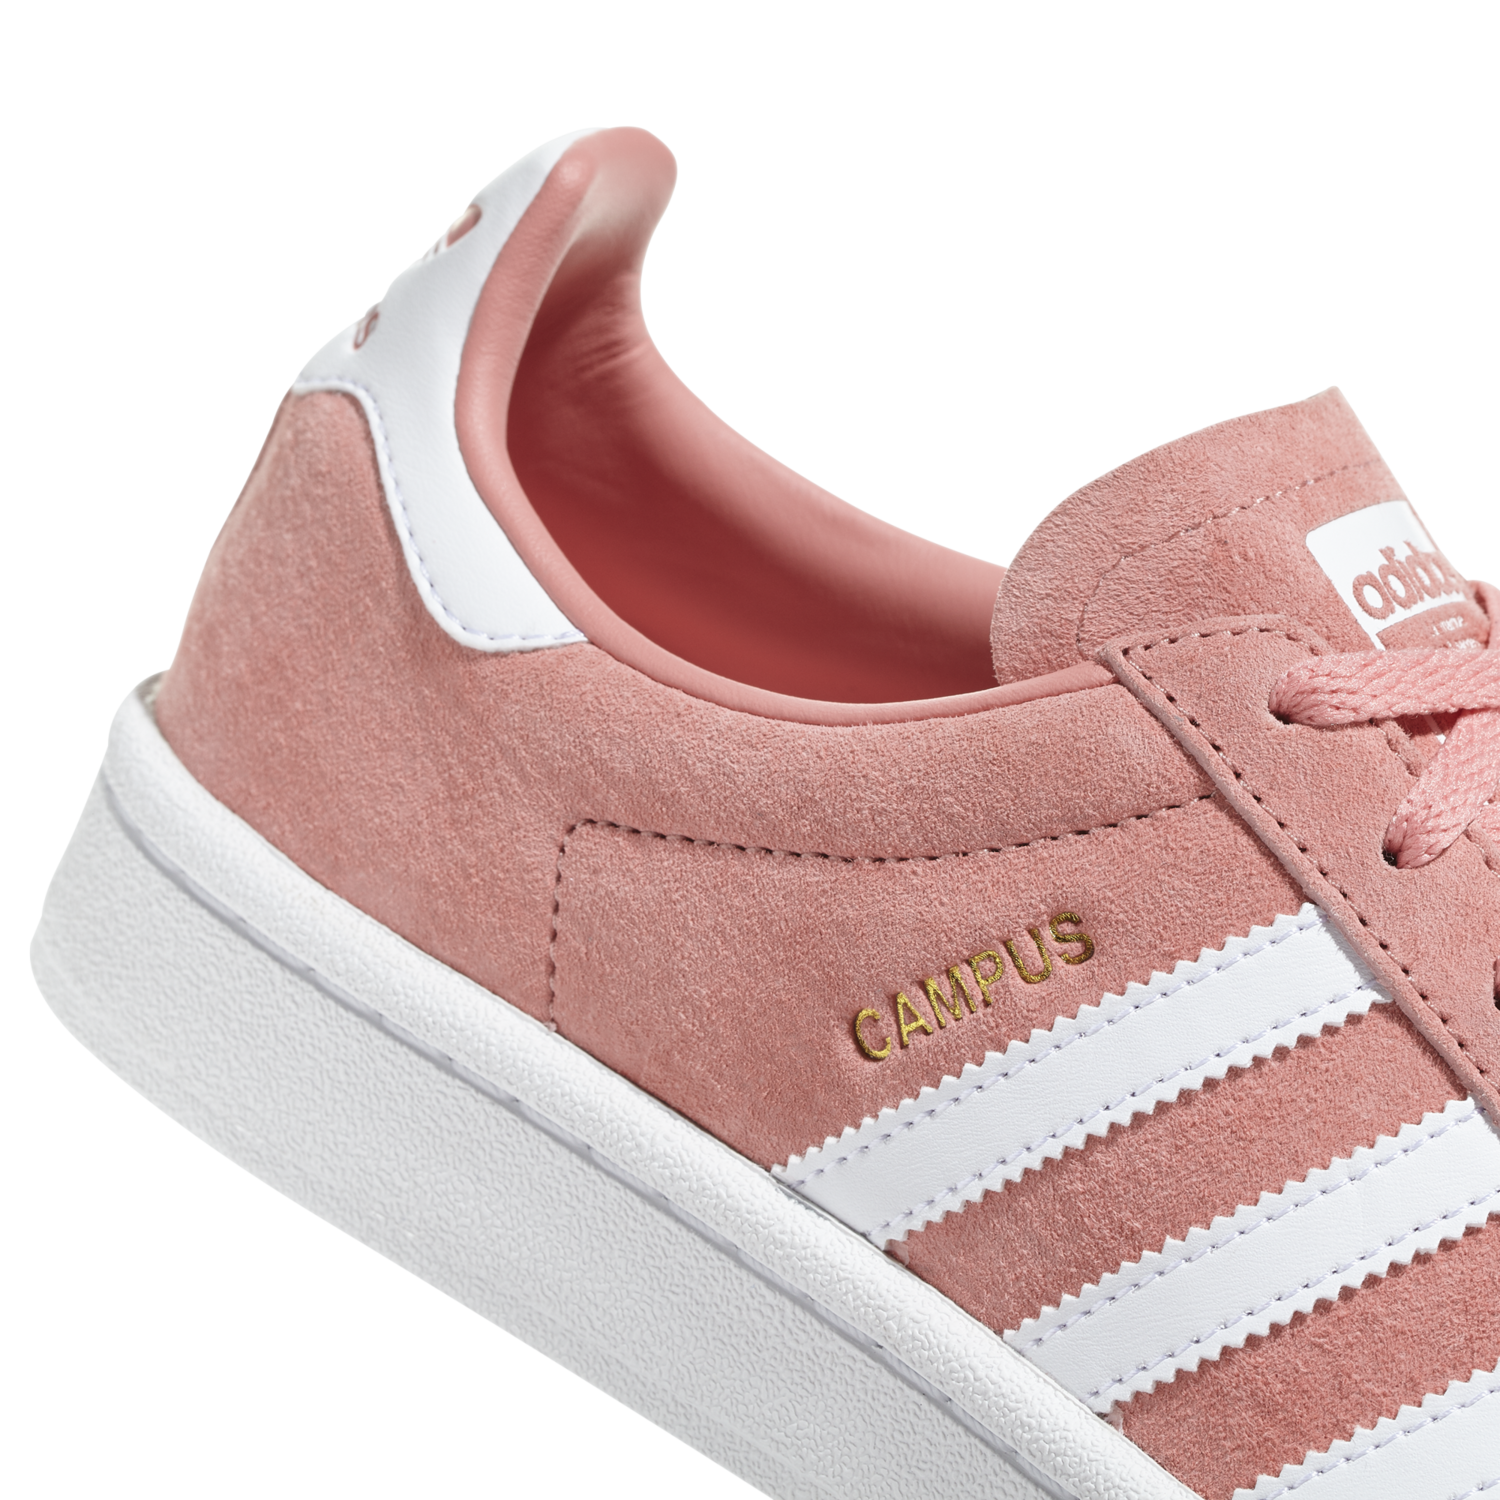 outlet store 7402a e684e BUTY DAMSKIE ADIDAS CAMPUS B41939 ...